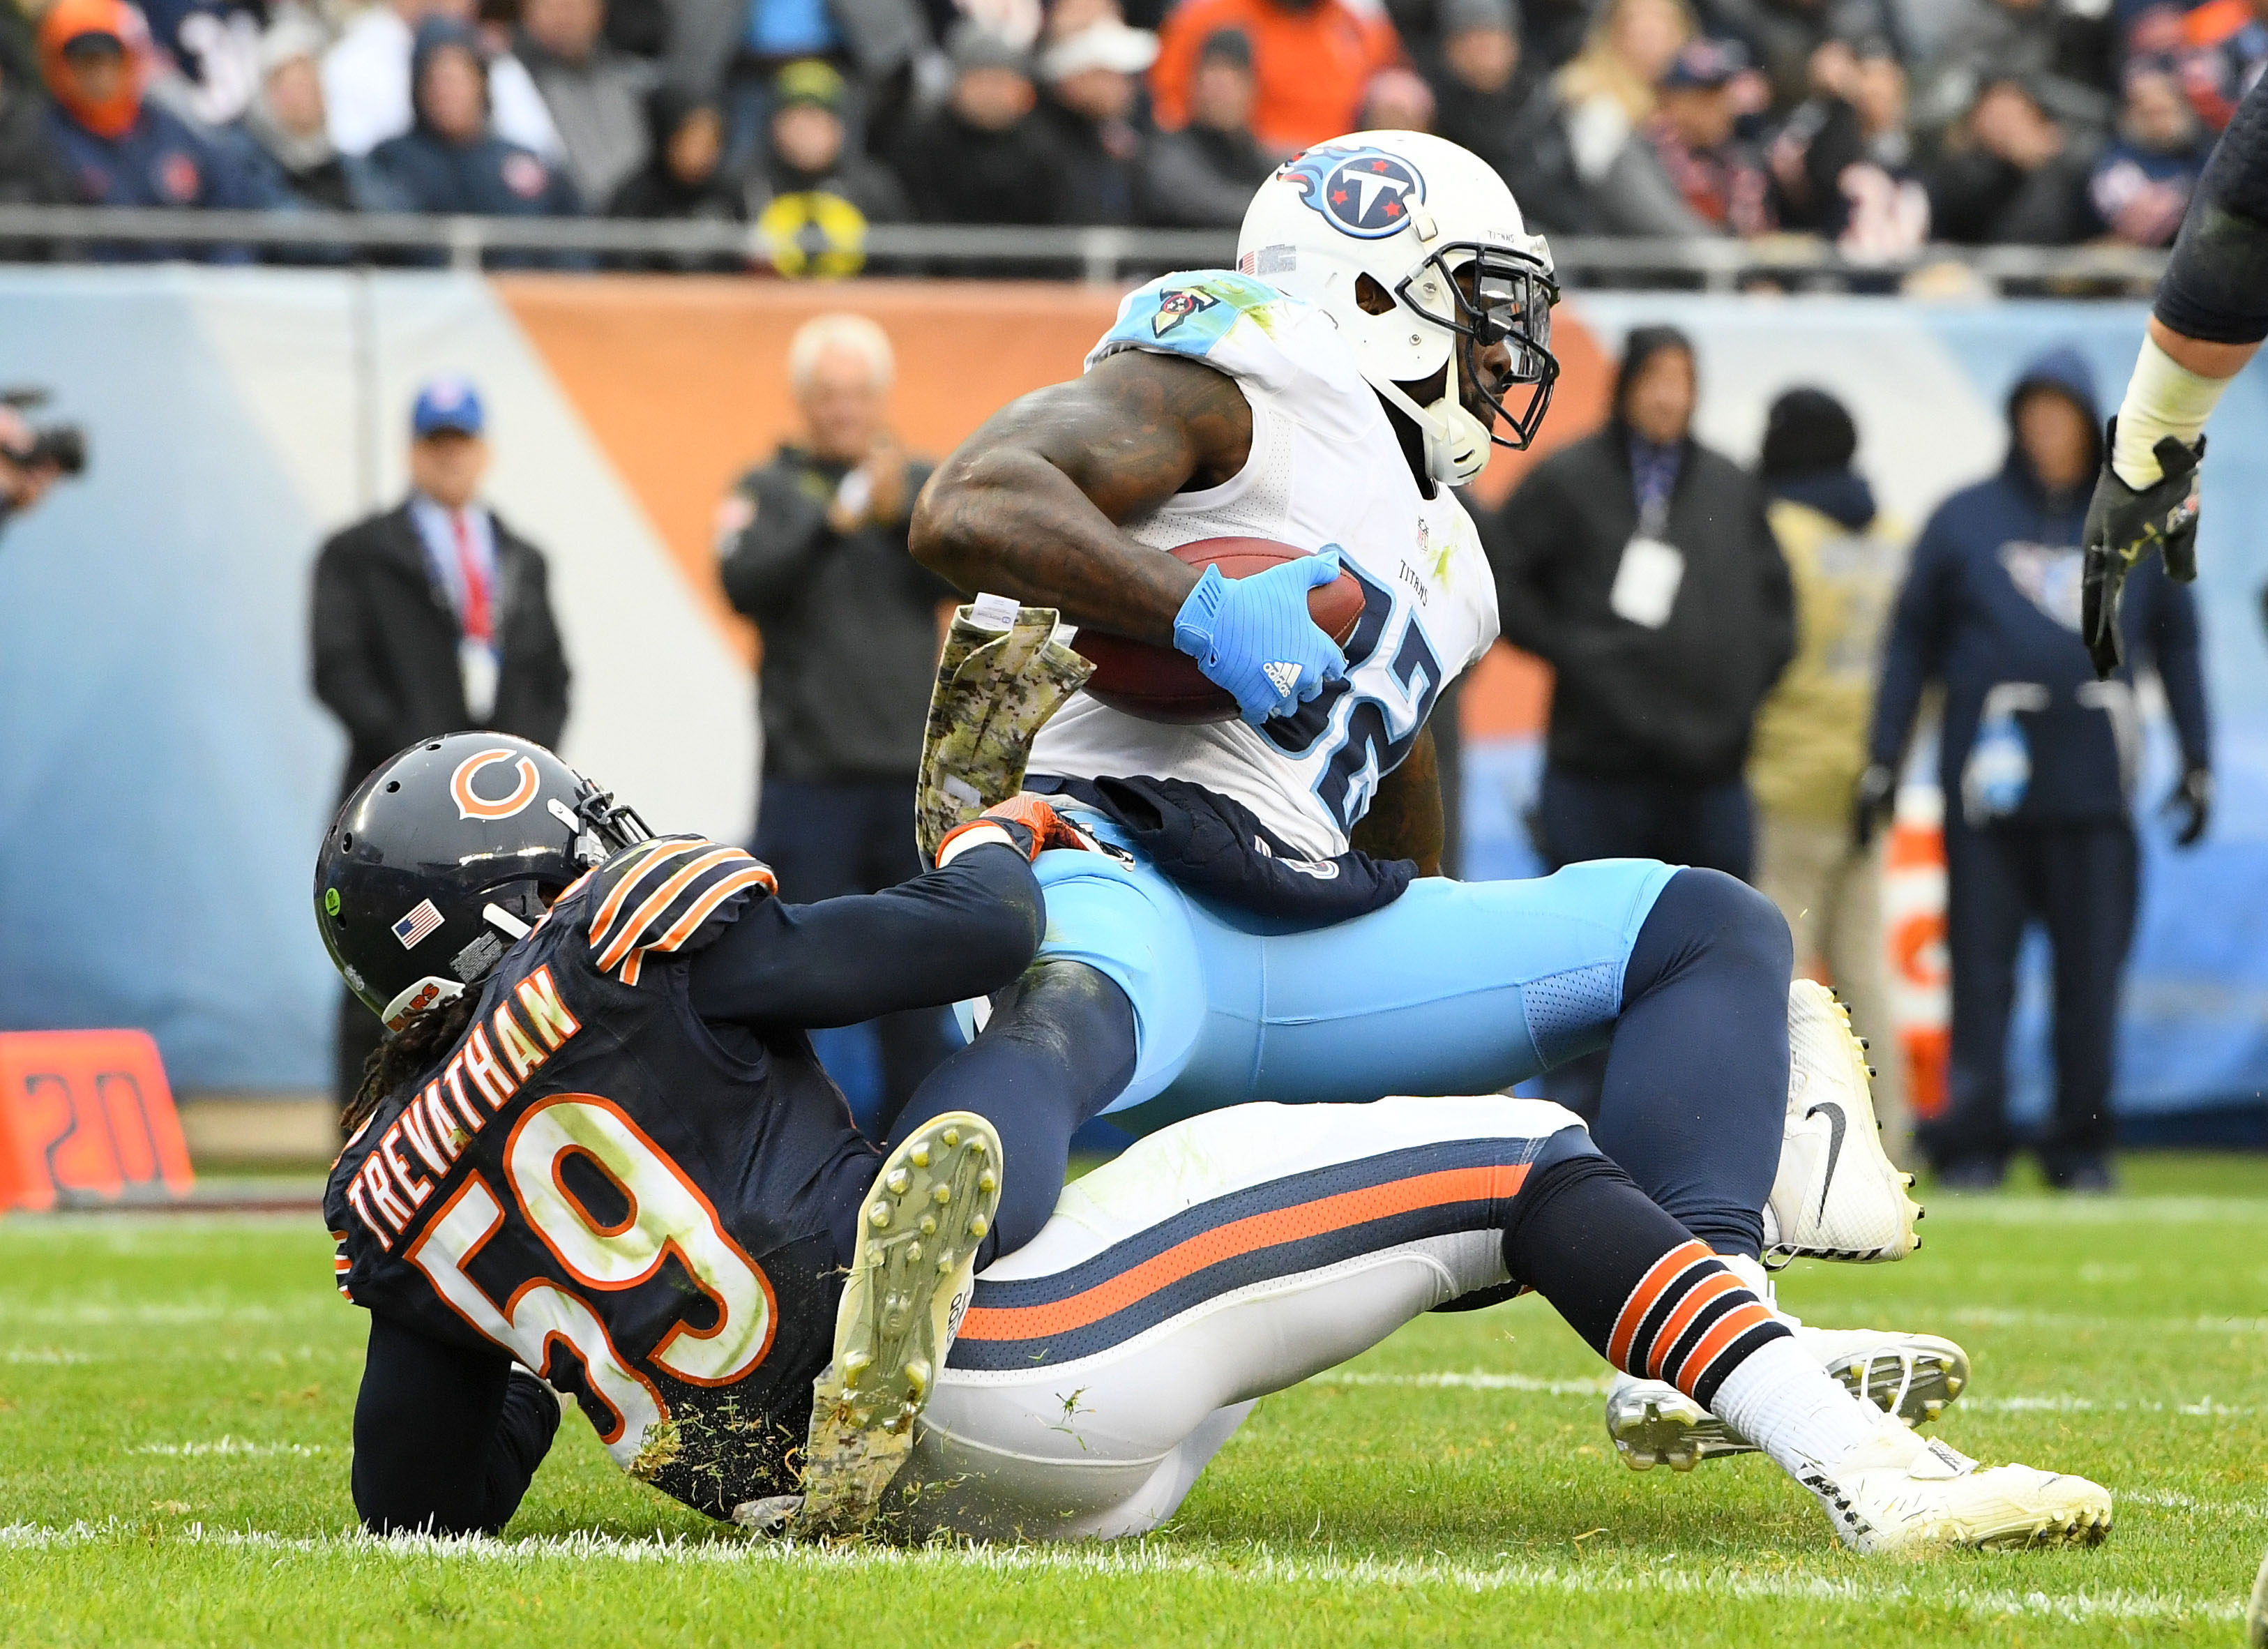 9708835-nfl-tennessee-titans-at-chicago-bears